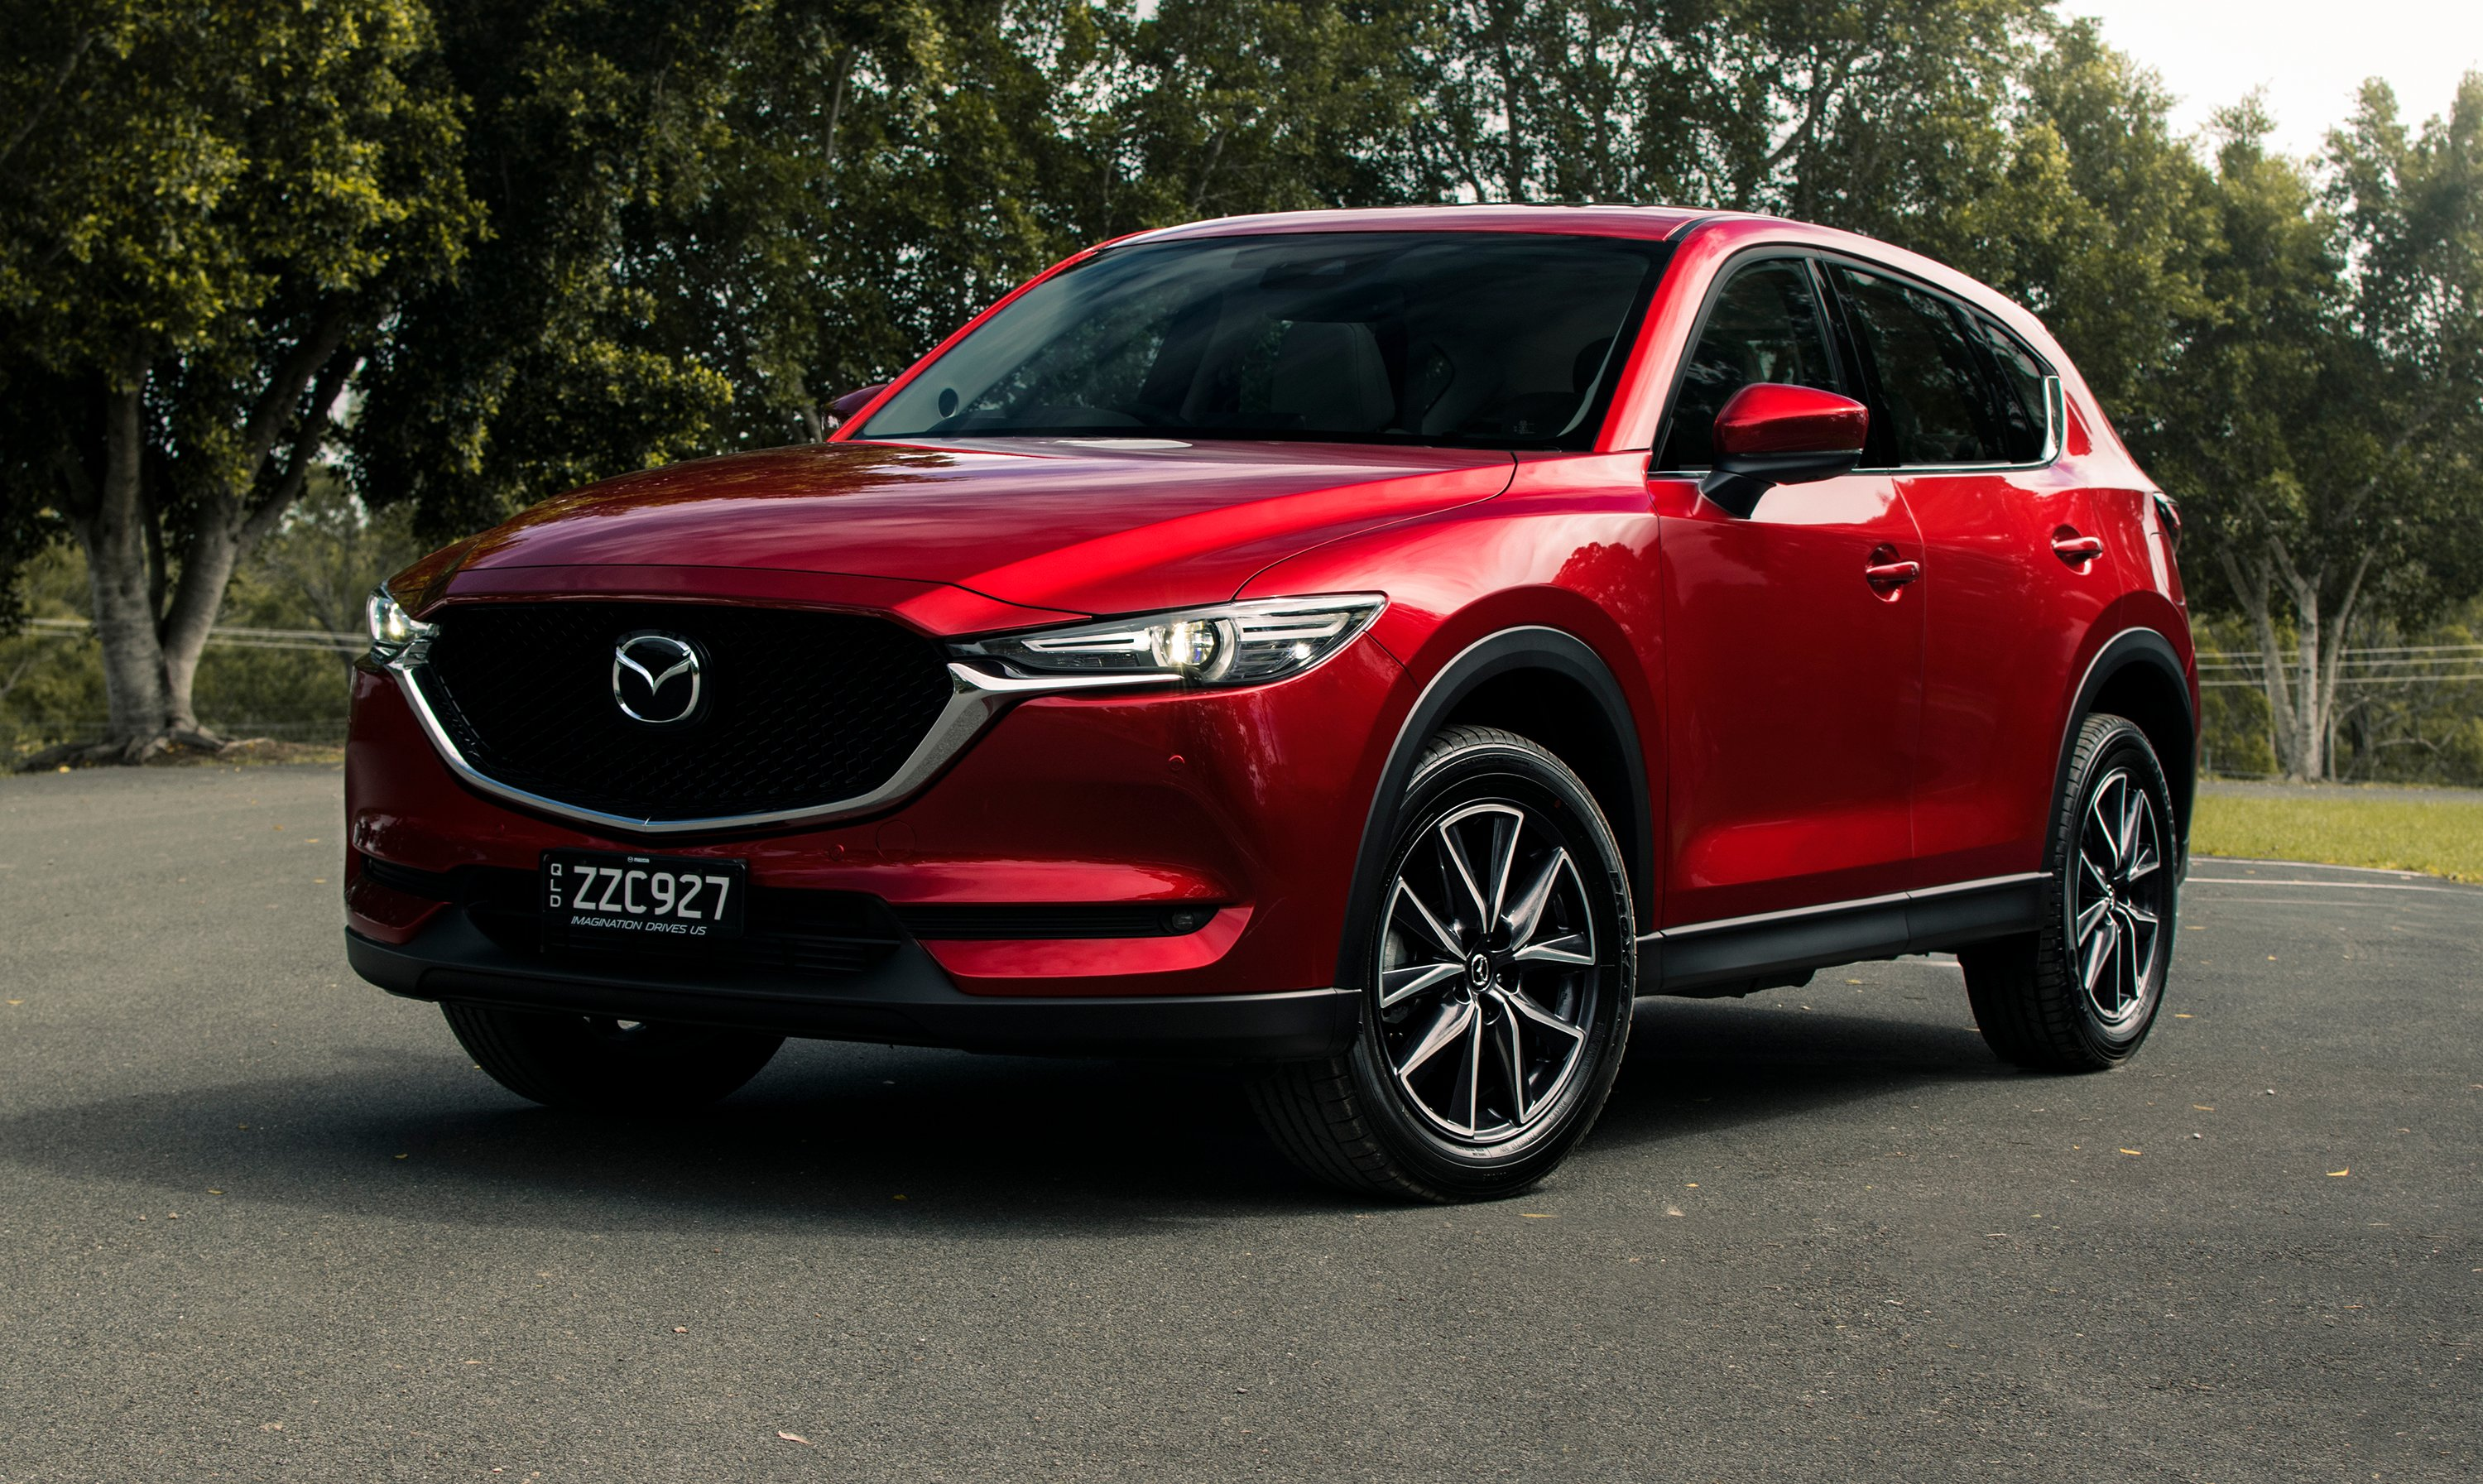 2017 mazda cx 5 range review photos. Black Bedroom Furniture Sets. Home Design Ideas